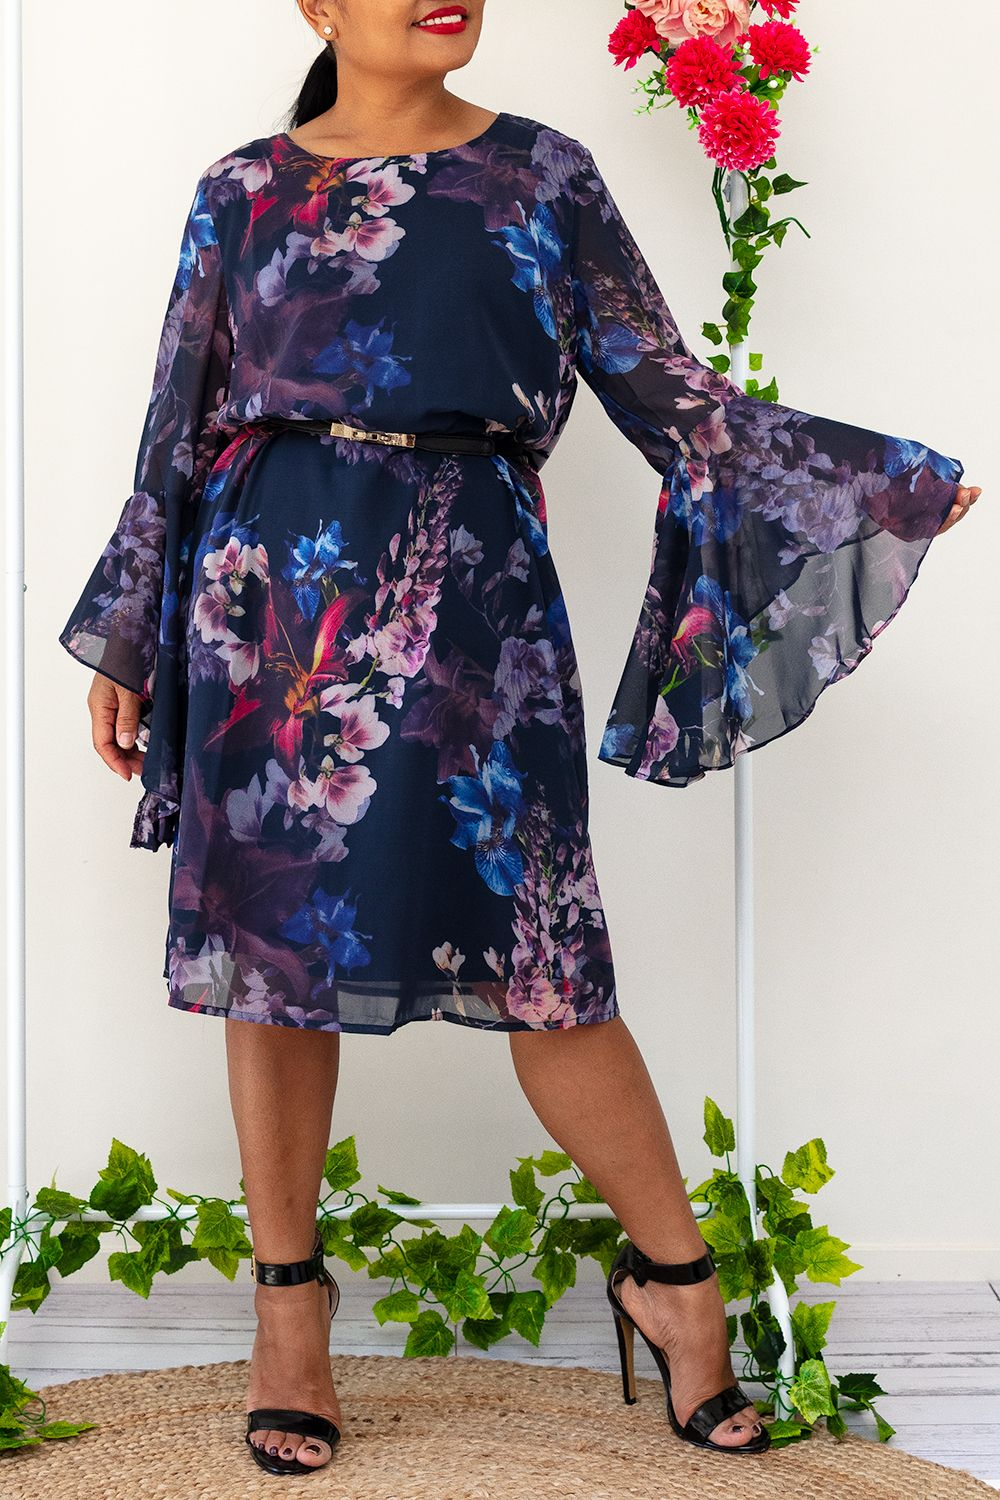 Ruffle Sleeves Floral Midi Fully lined dress blue navy